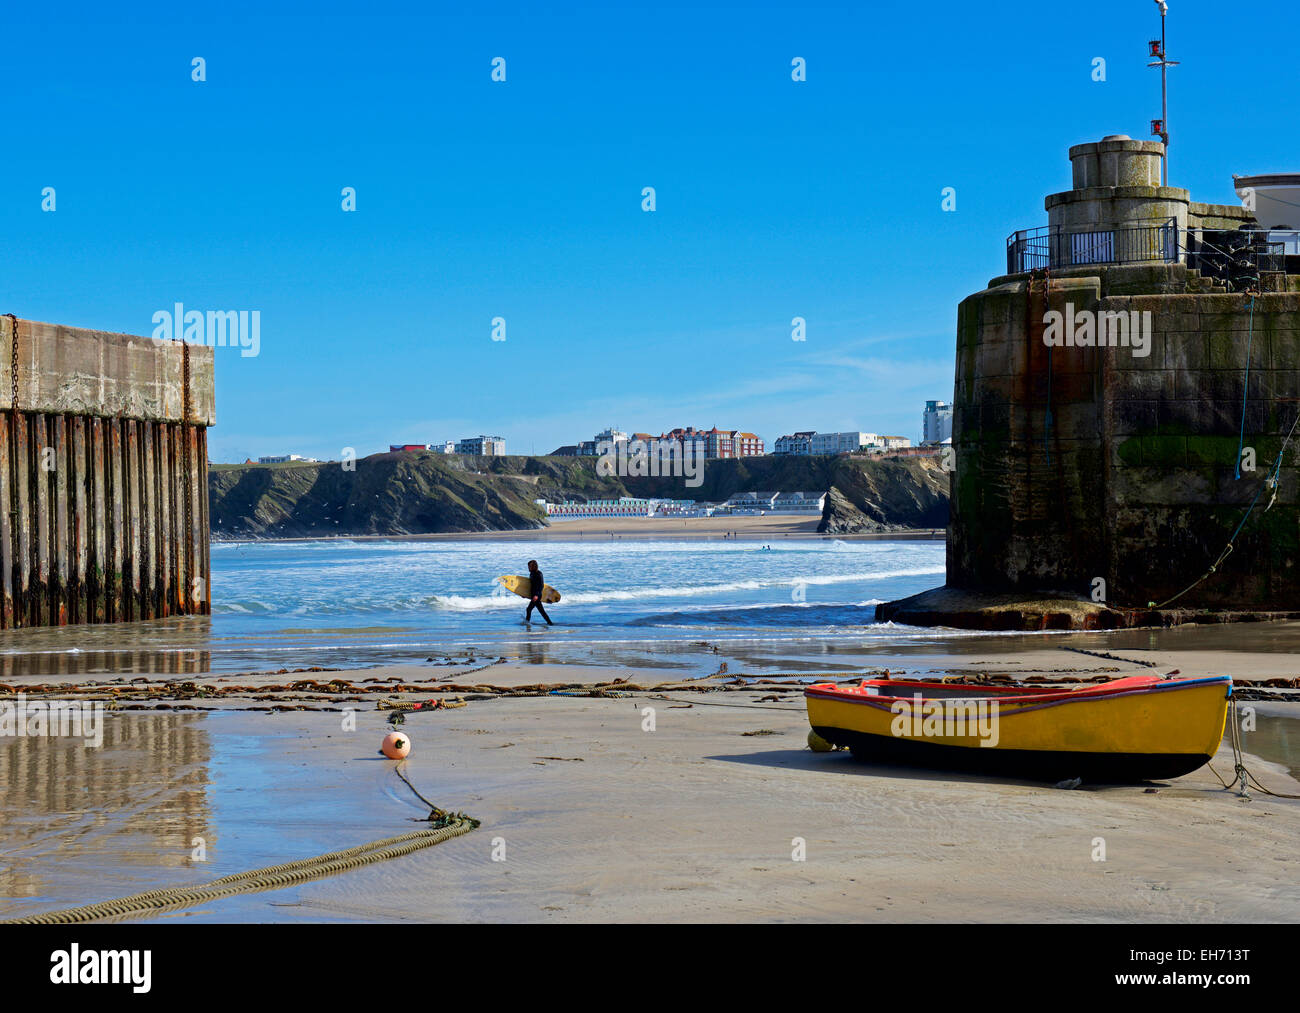 Surfer walking past the harbour, Newquay, Cornwall, England UK - Stock Image